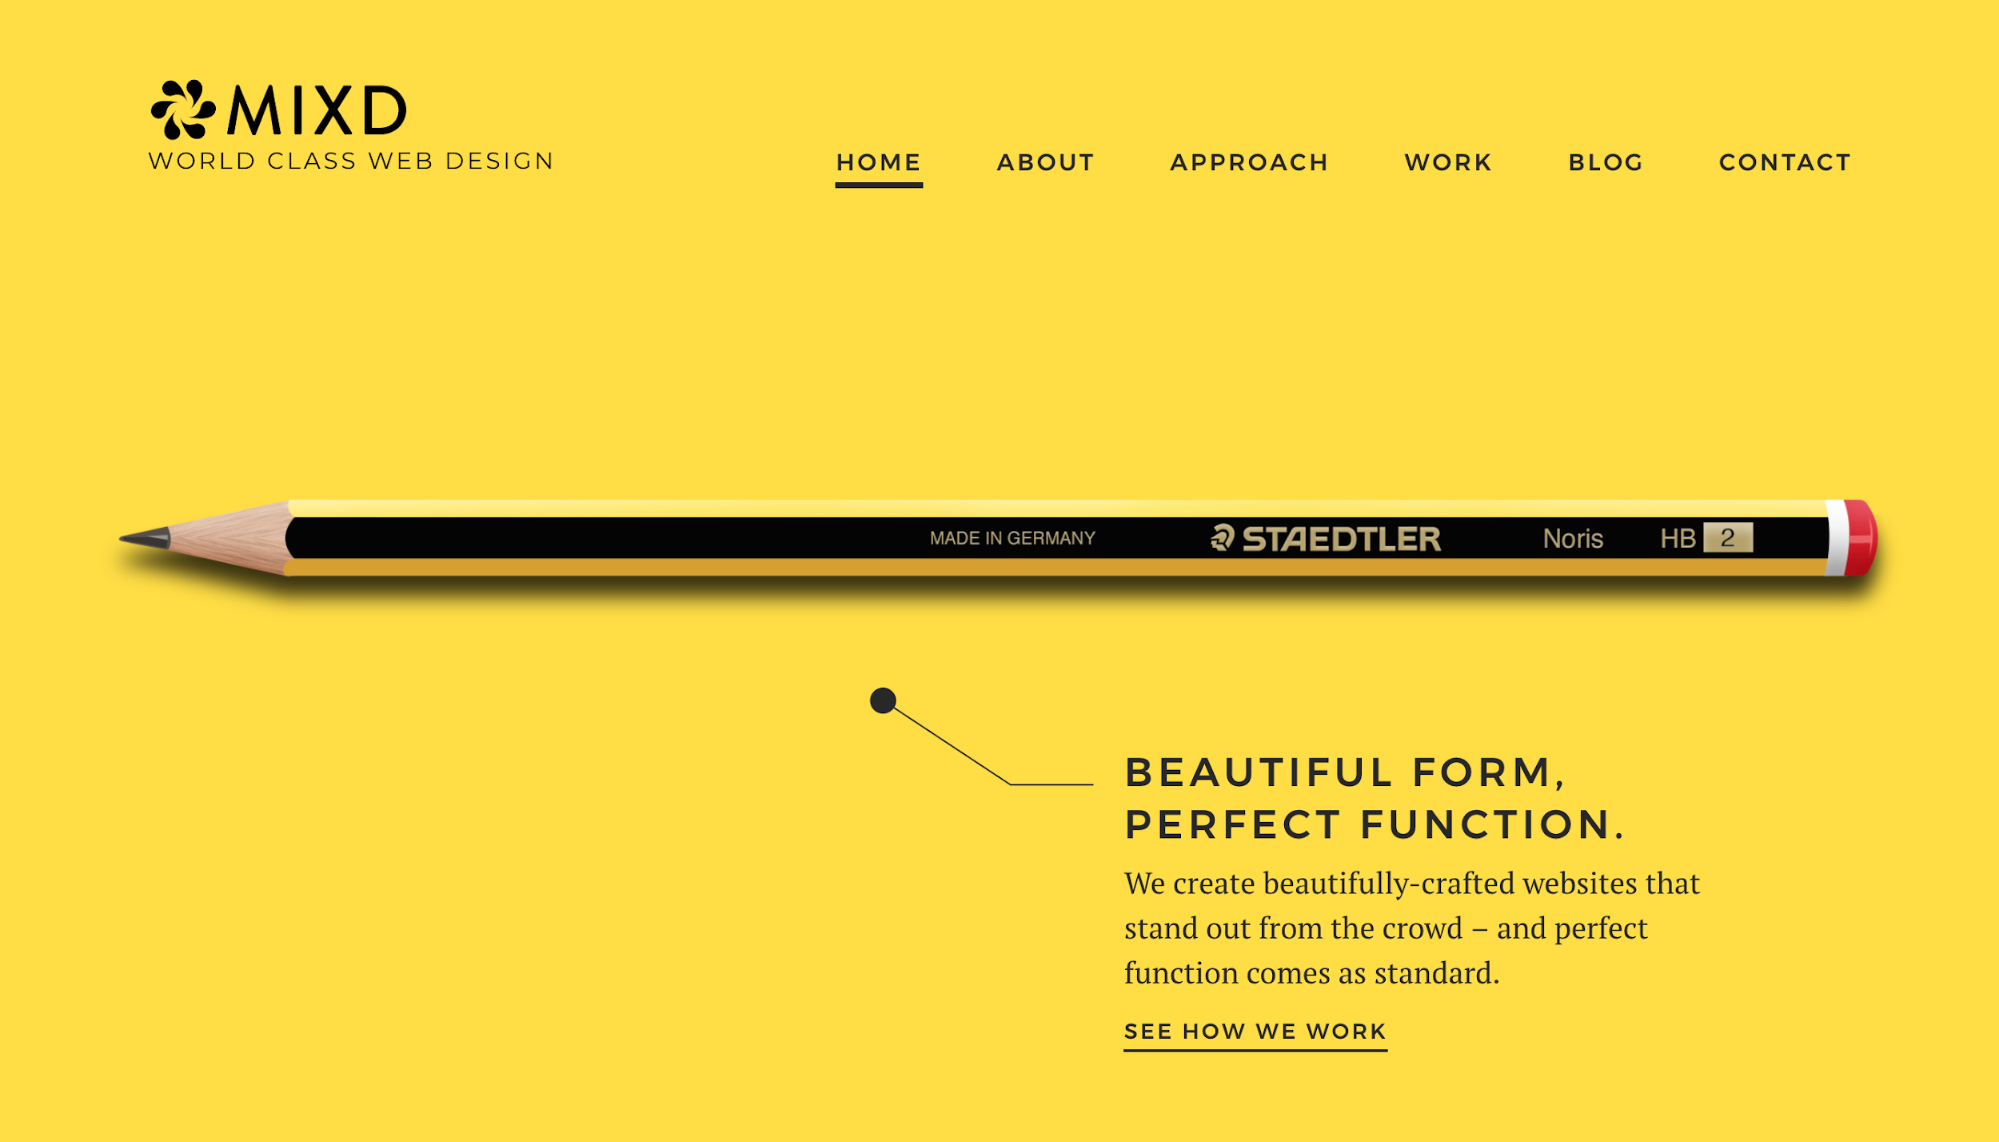 Minimalist web design is one of the many UX design principles.